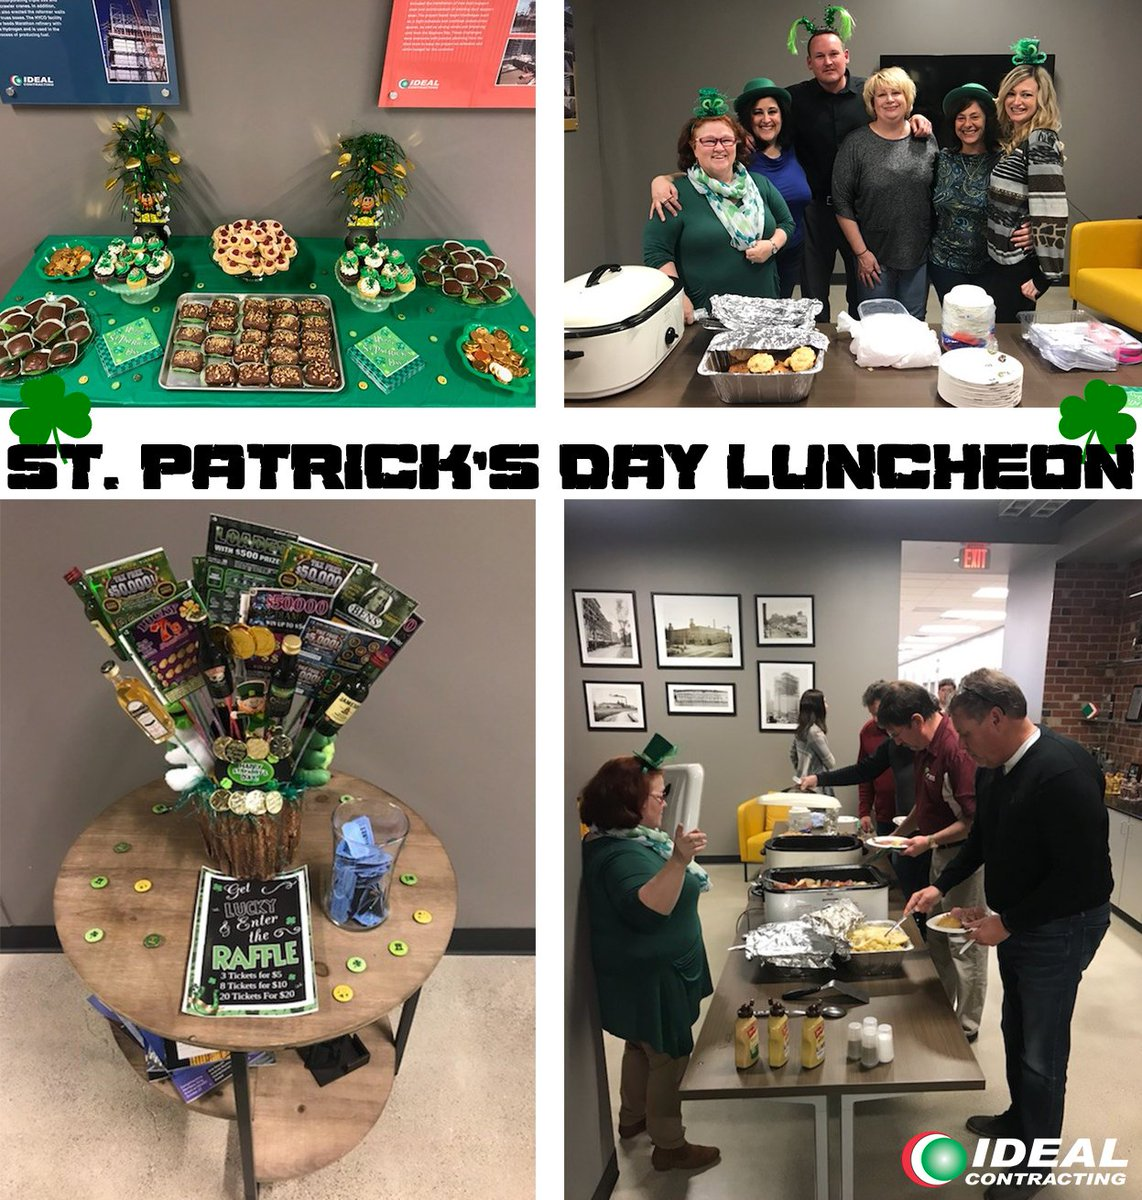 test Twitter Media - Celebrating St. Patrick's Day at Ideal! #St.Patrick'sDay #TheIdealWay https://t.co/h7jpP13Seo